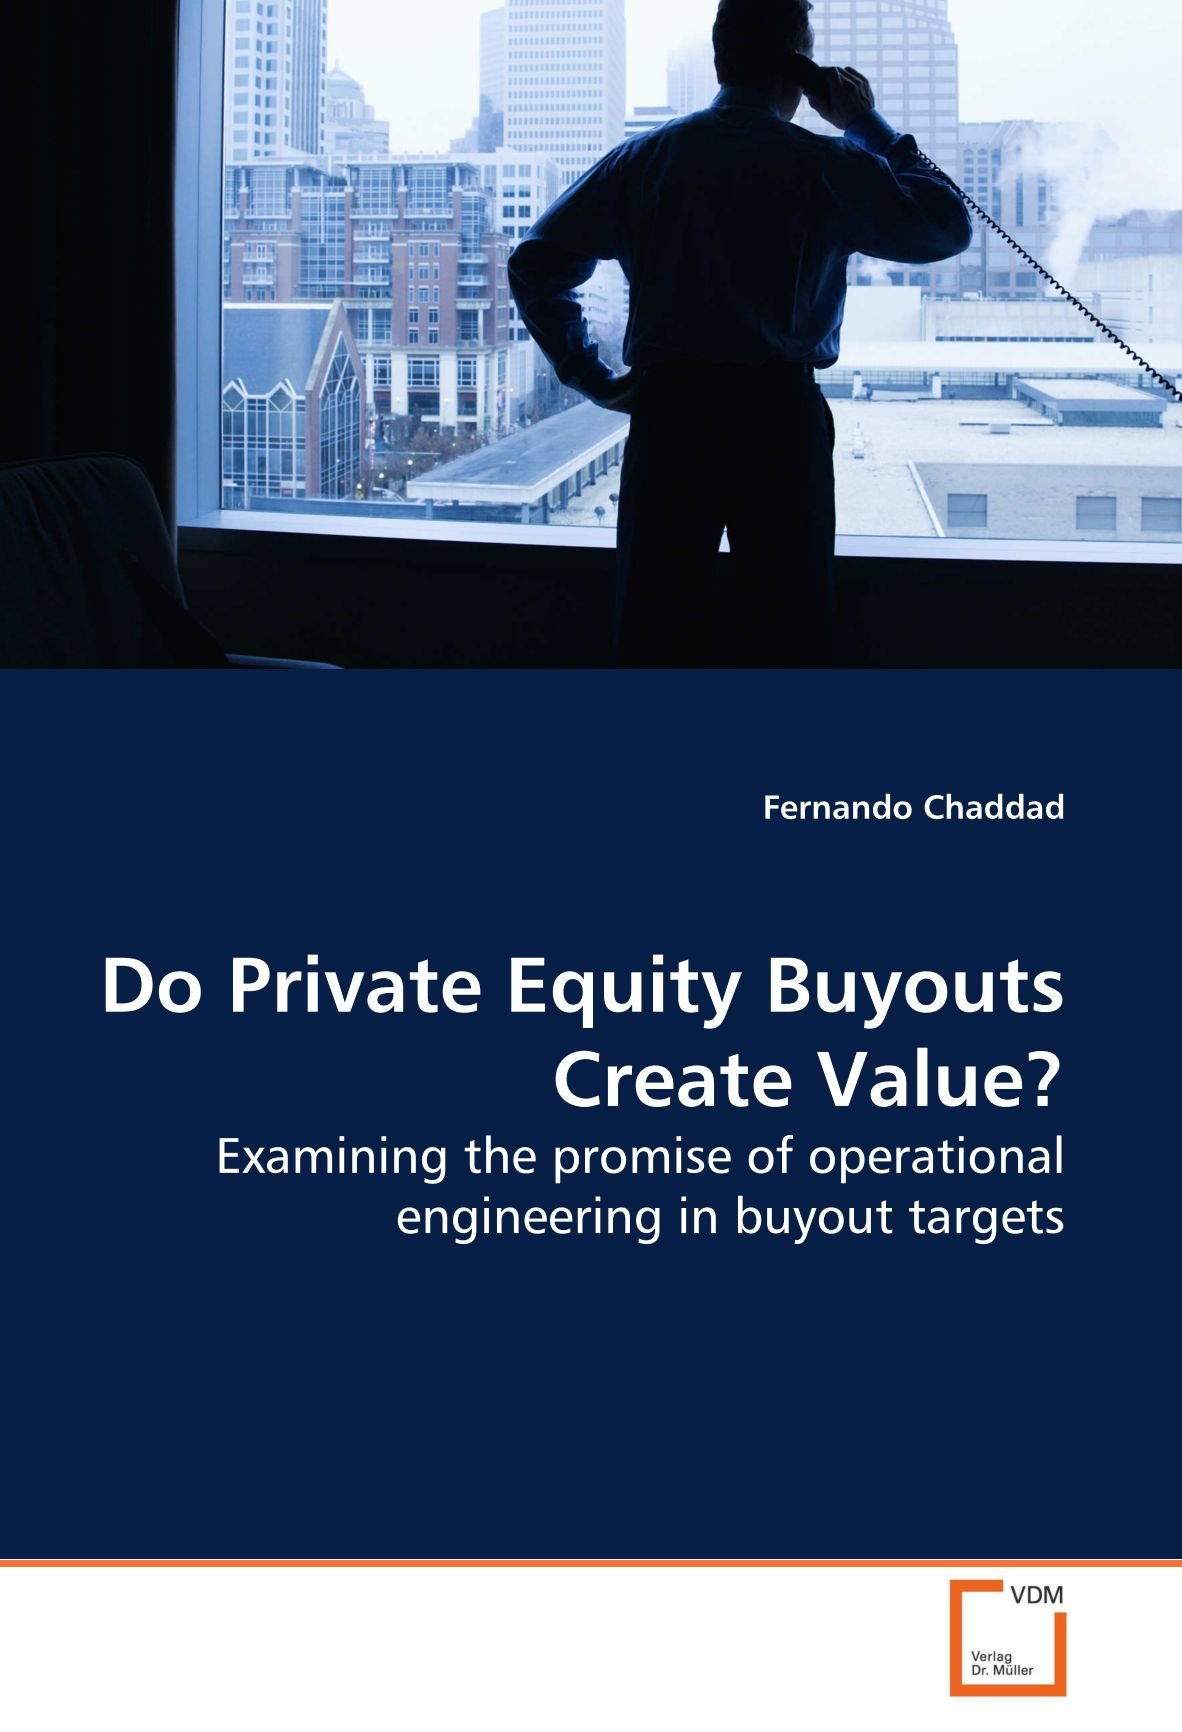 Do Private Equity Buyouts Create Value?: Examining the promise of operational engineering in buyout targets